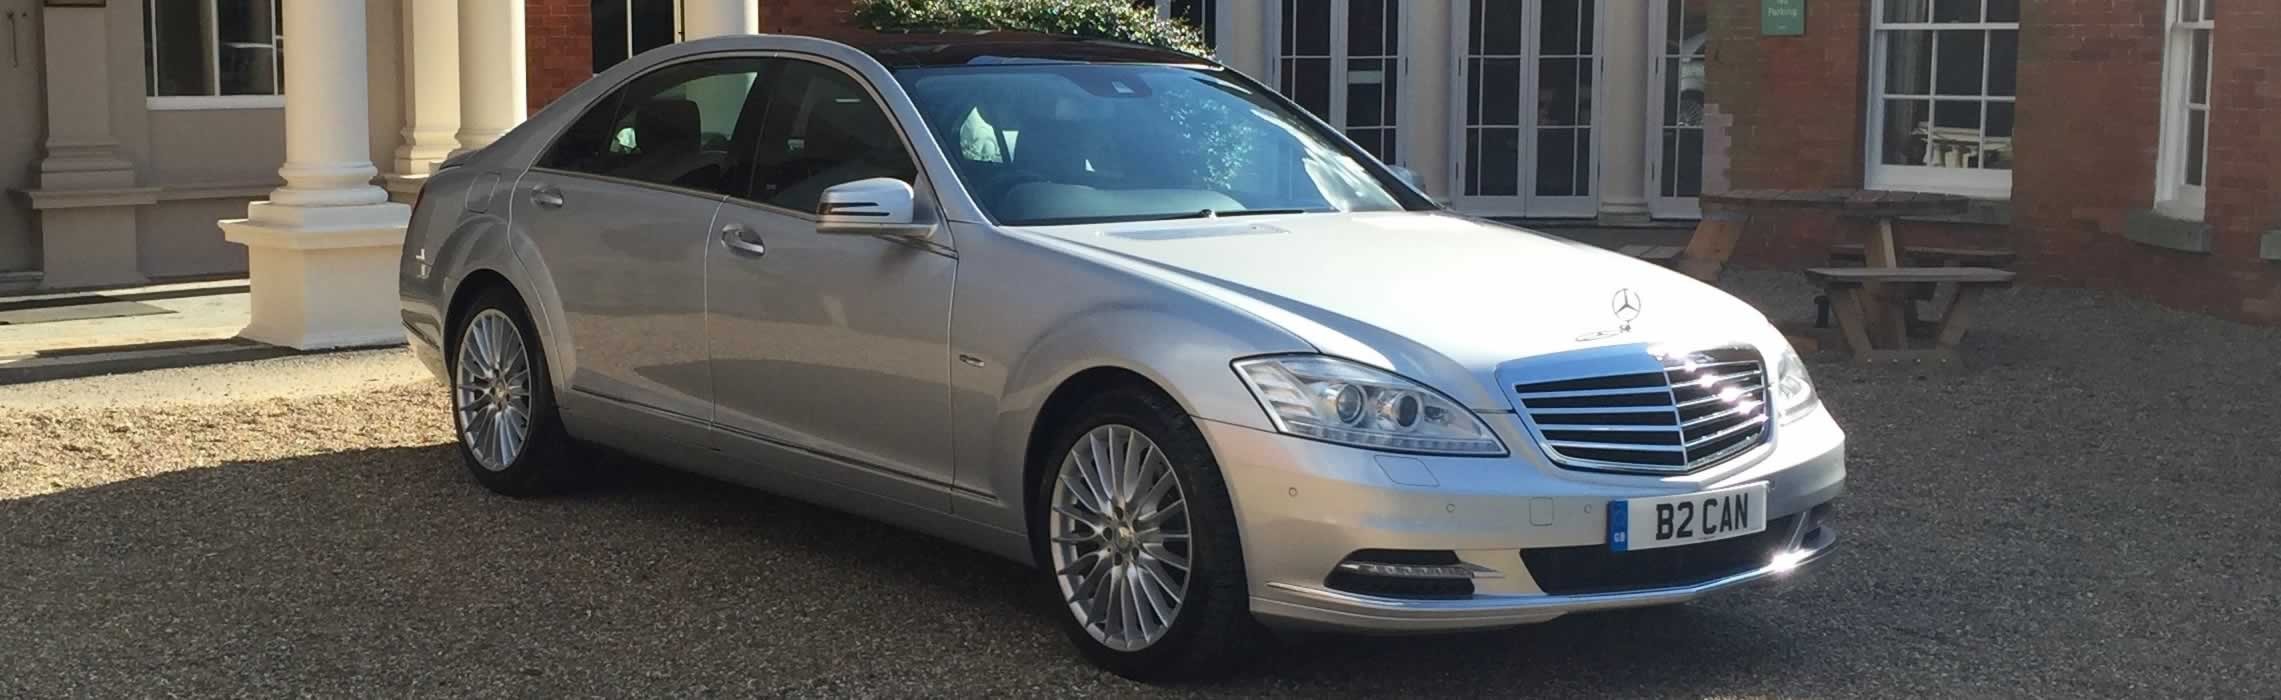 Mercedes S-Class hire in London